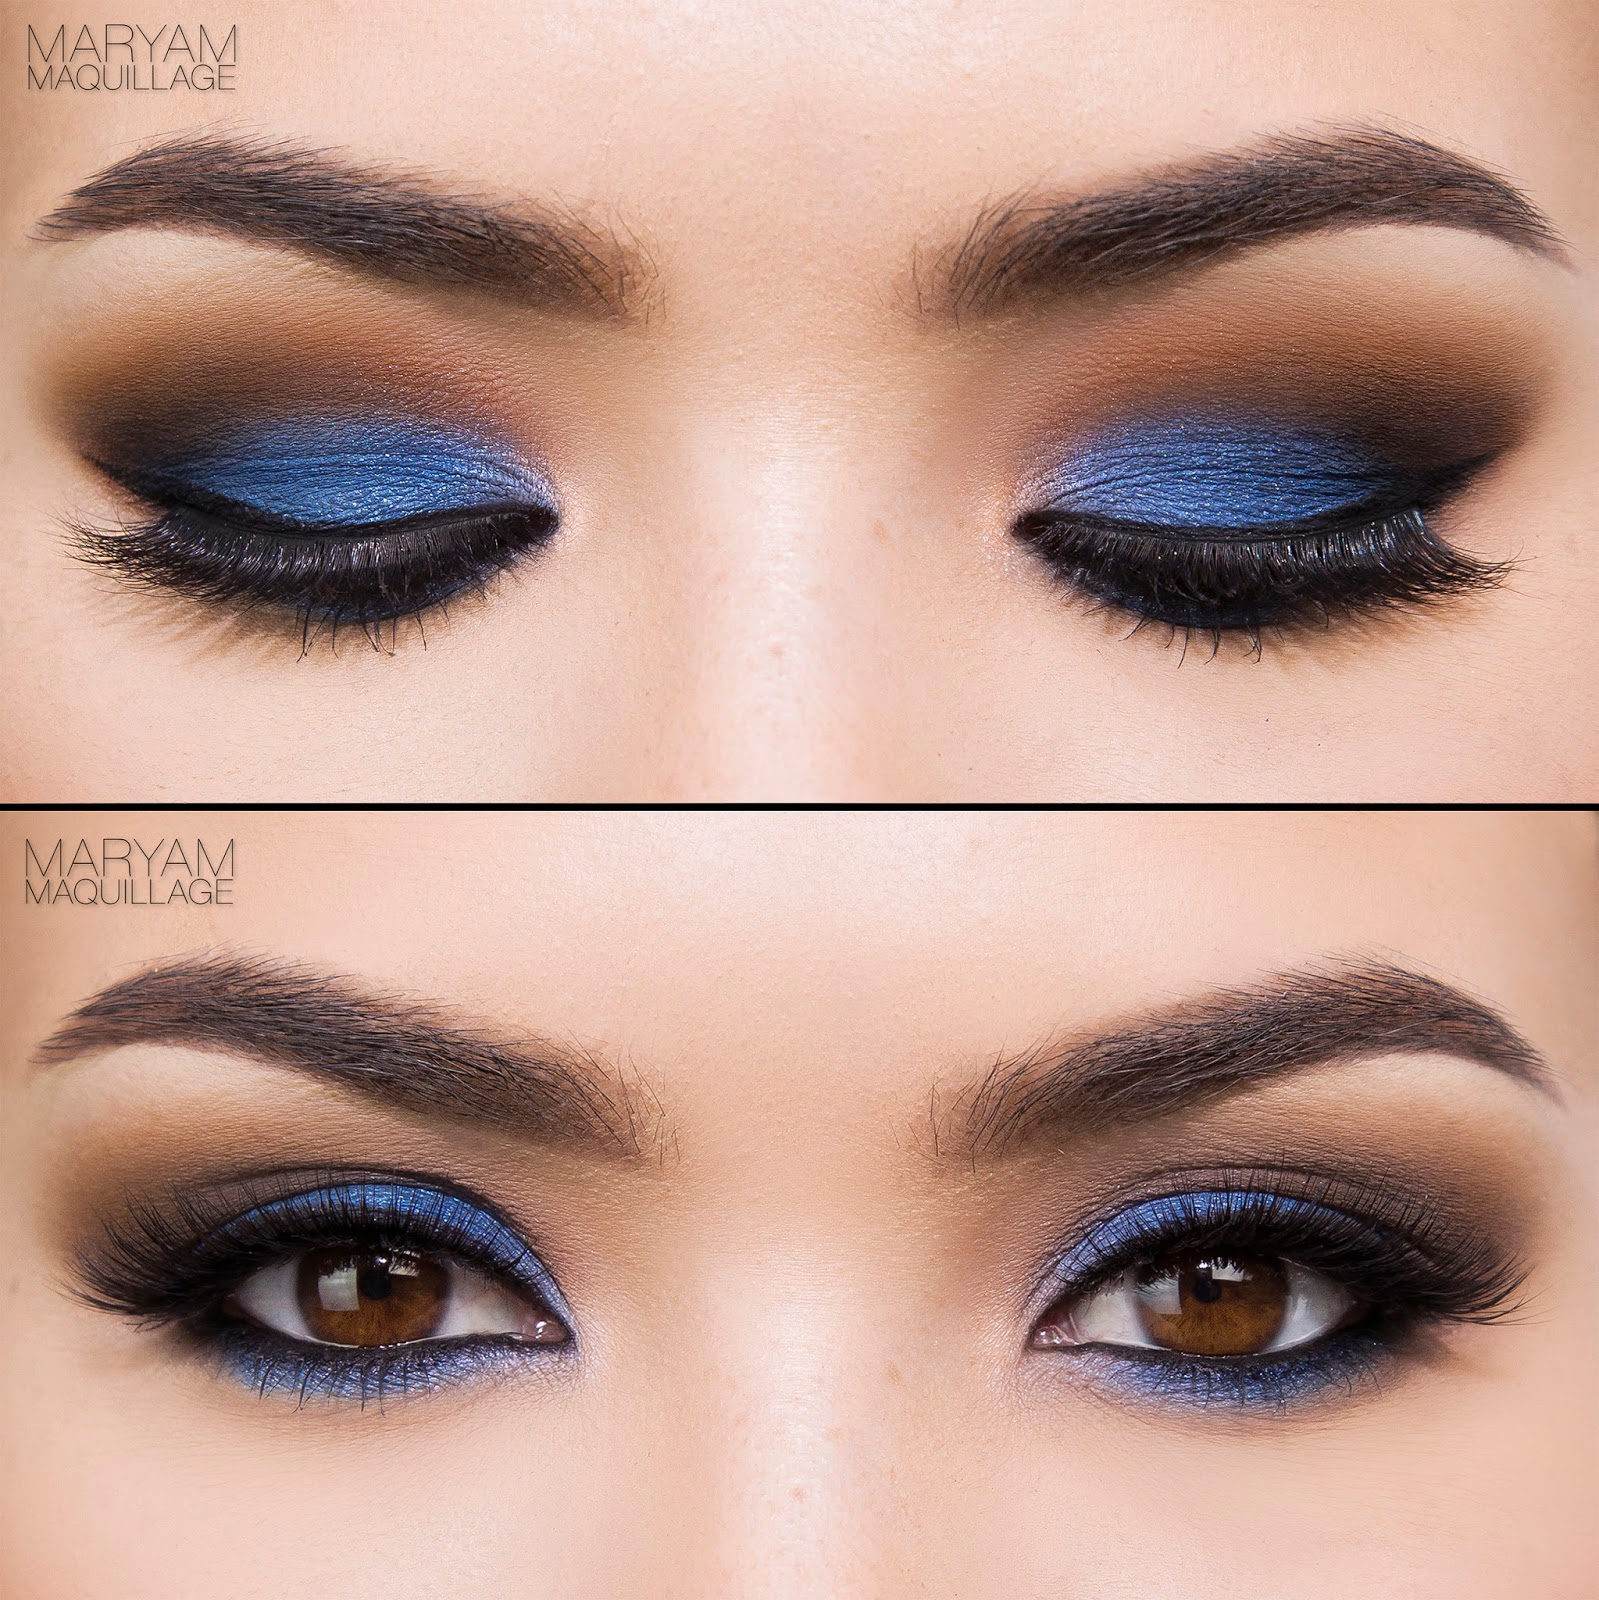 Maryam Maquillage: Pop of Color: 2 Makeup Looks + Tutorials